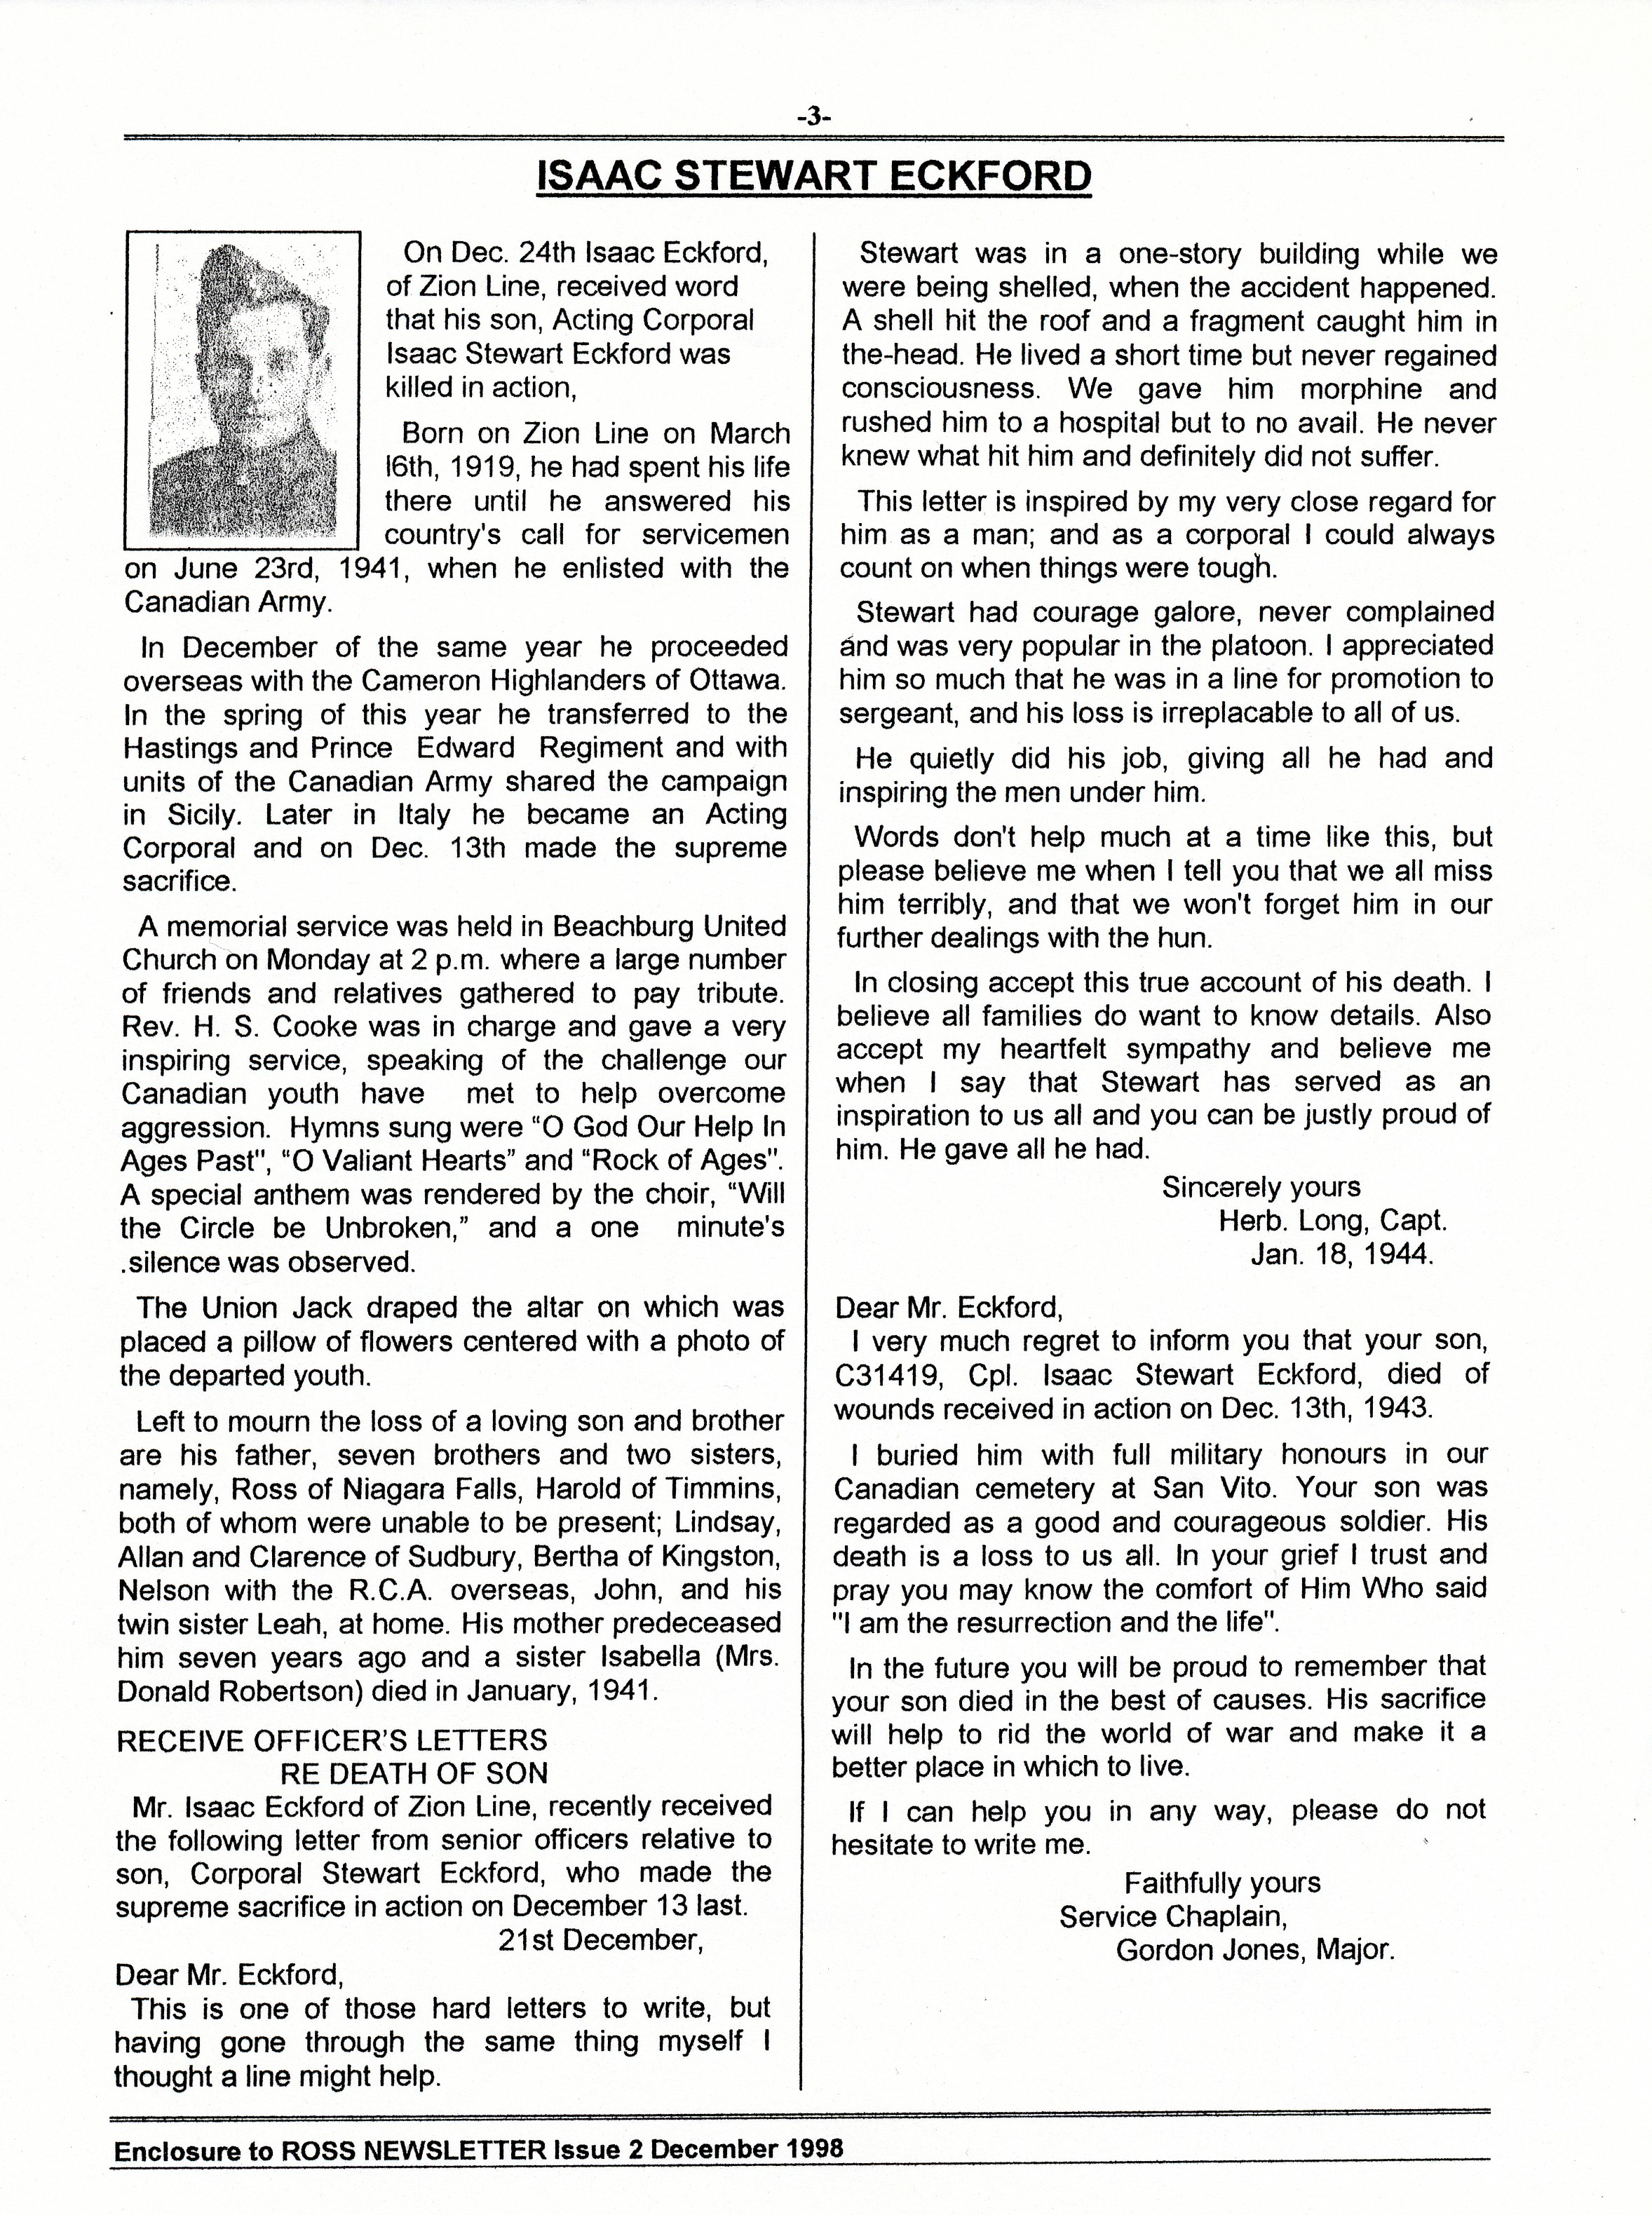 Biography– Information about the death of Isaac Stuart Eckford reprinted in the Ross family newsletter, December 1998.